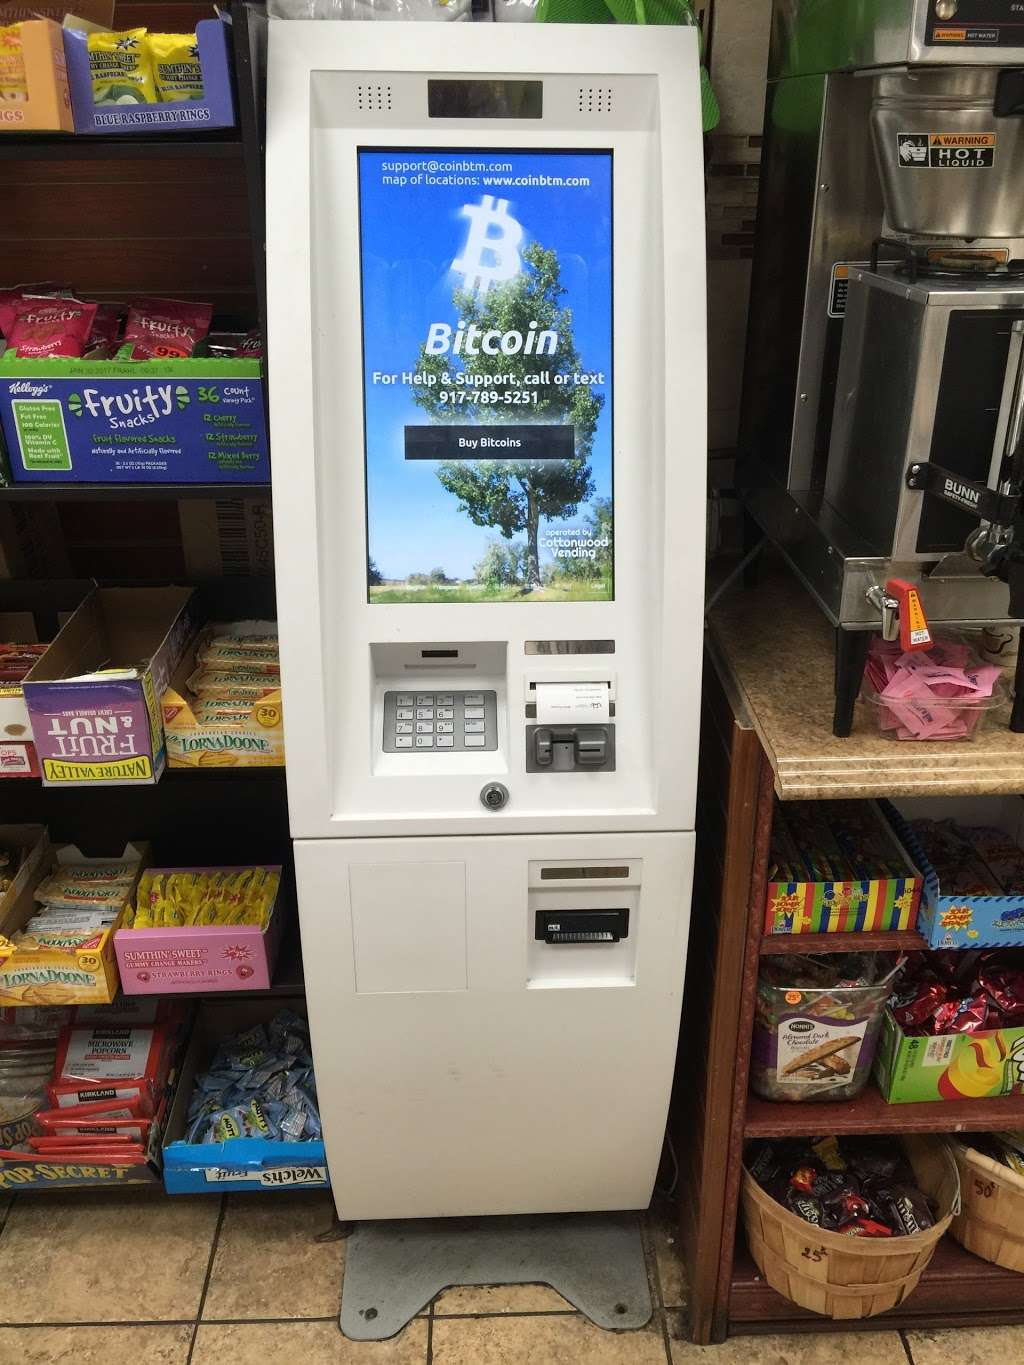 CoinBTM - Bitcoin ATM - atm  | Photo 4 of 10 | Address: 630 W 207th St, New York, NY 10034, USA | Phone: (917) 789-5251